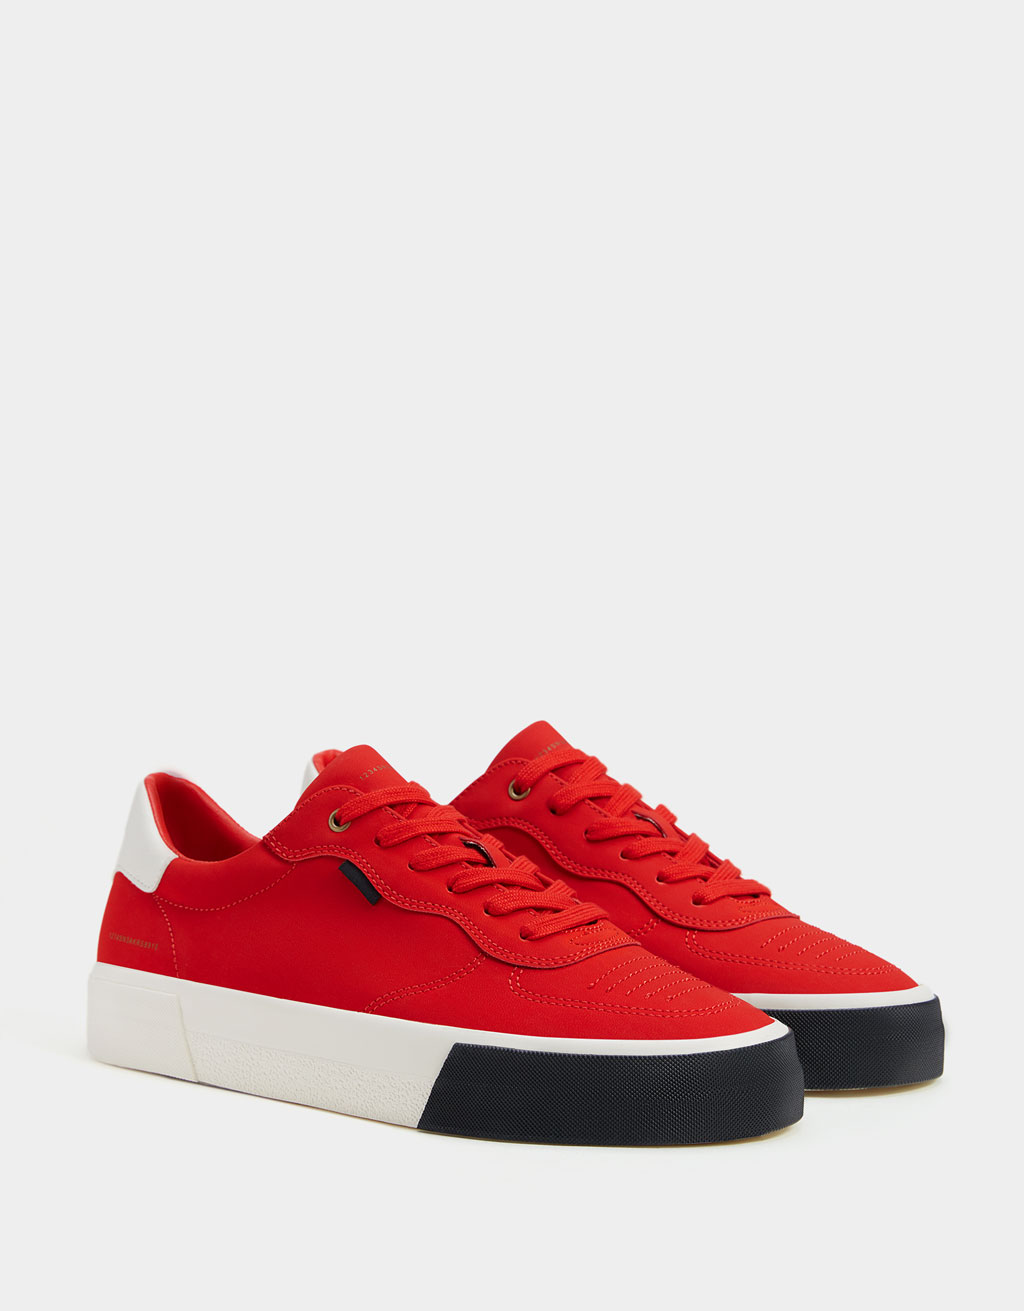 Men's contrast trainers